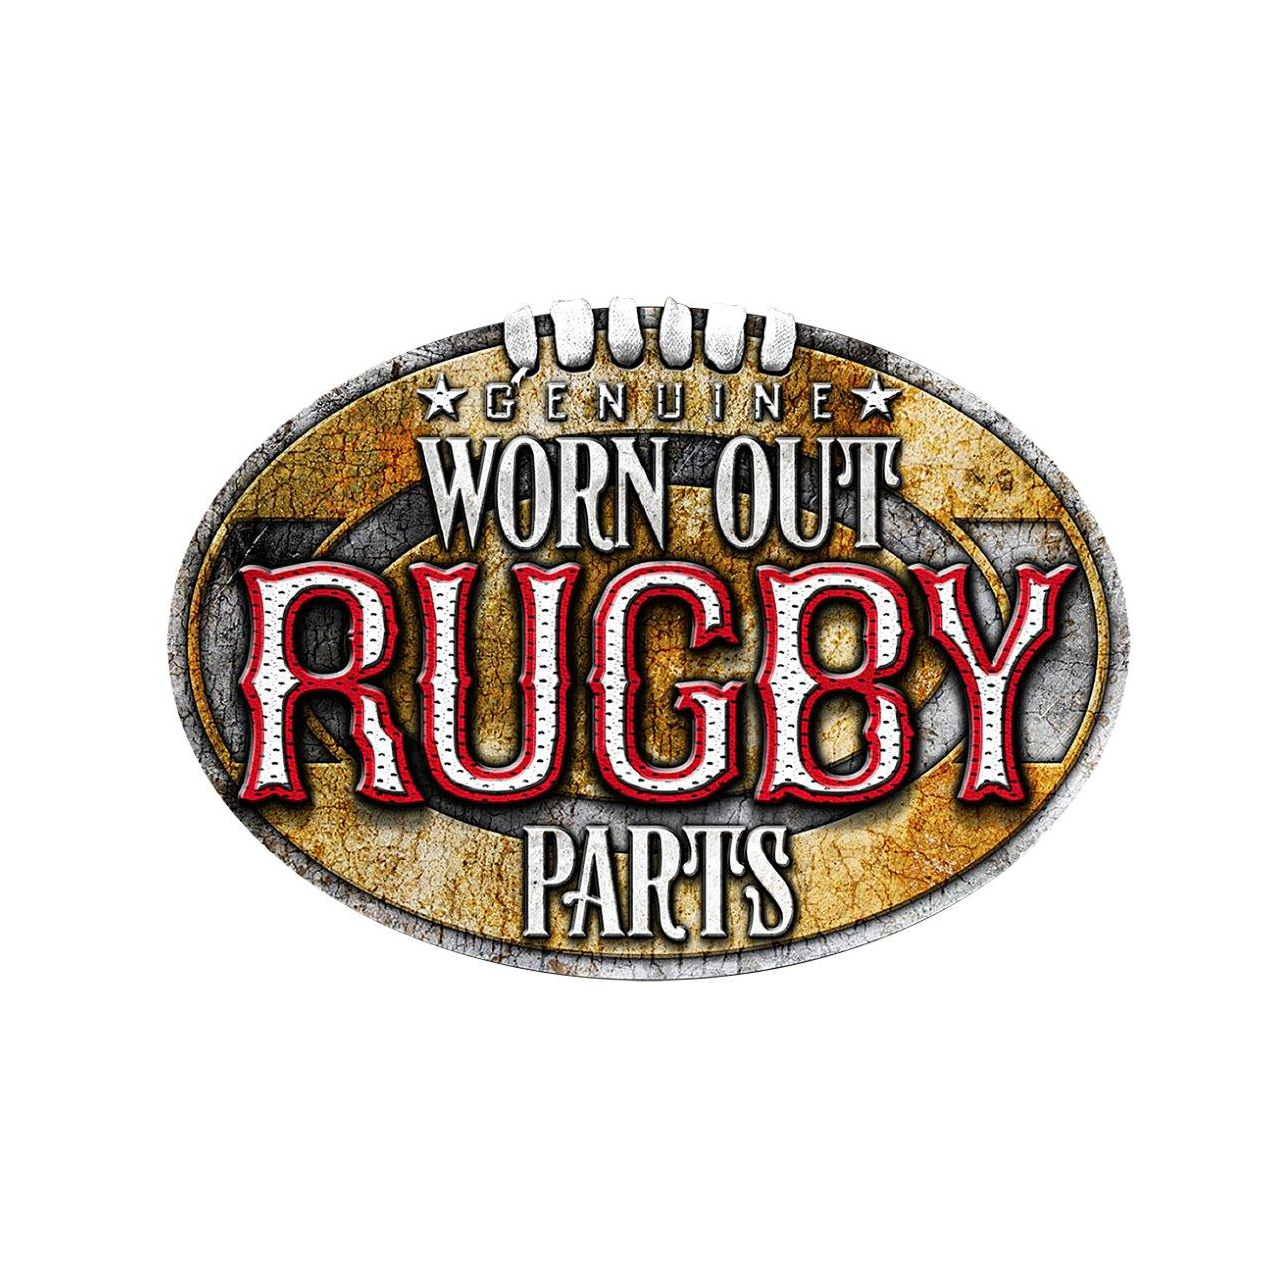 Fun and Funky Printed T-Shirts from Jageto Embroidery and Print in Braintree, Essex in the UK - Genuine Worn Out Rugby Parts Printed Printed T-Shirt